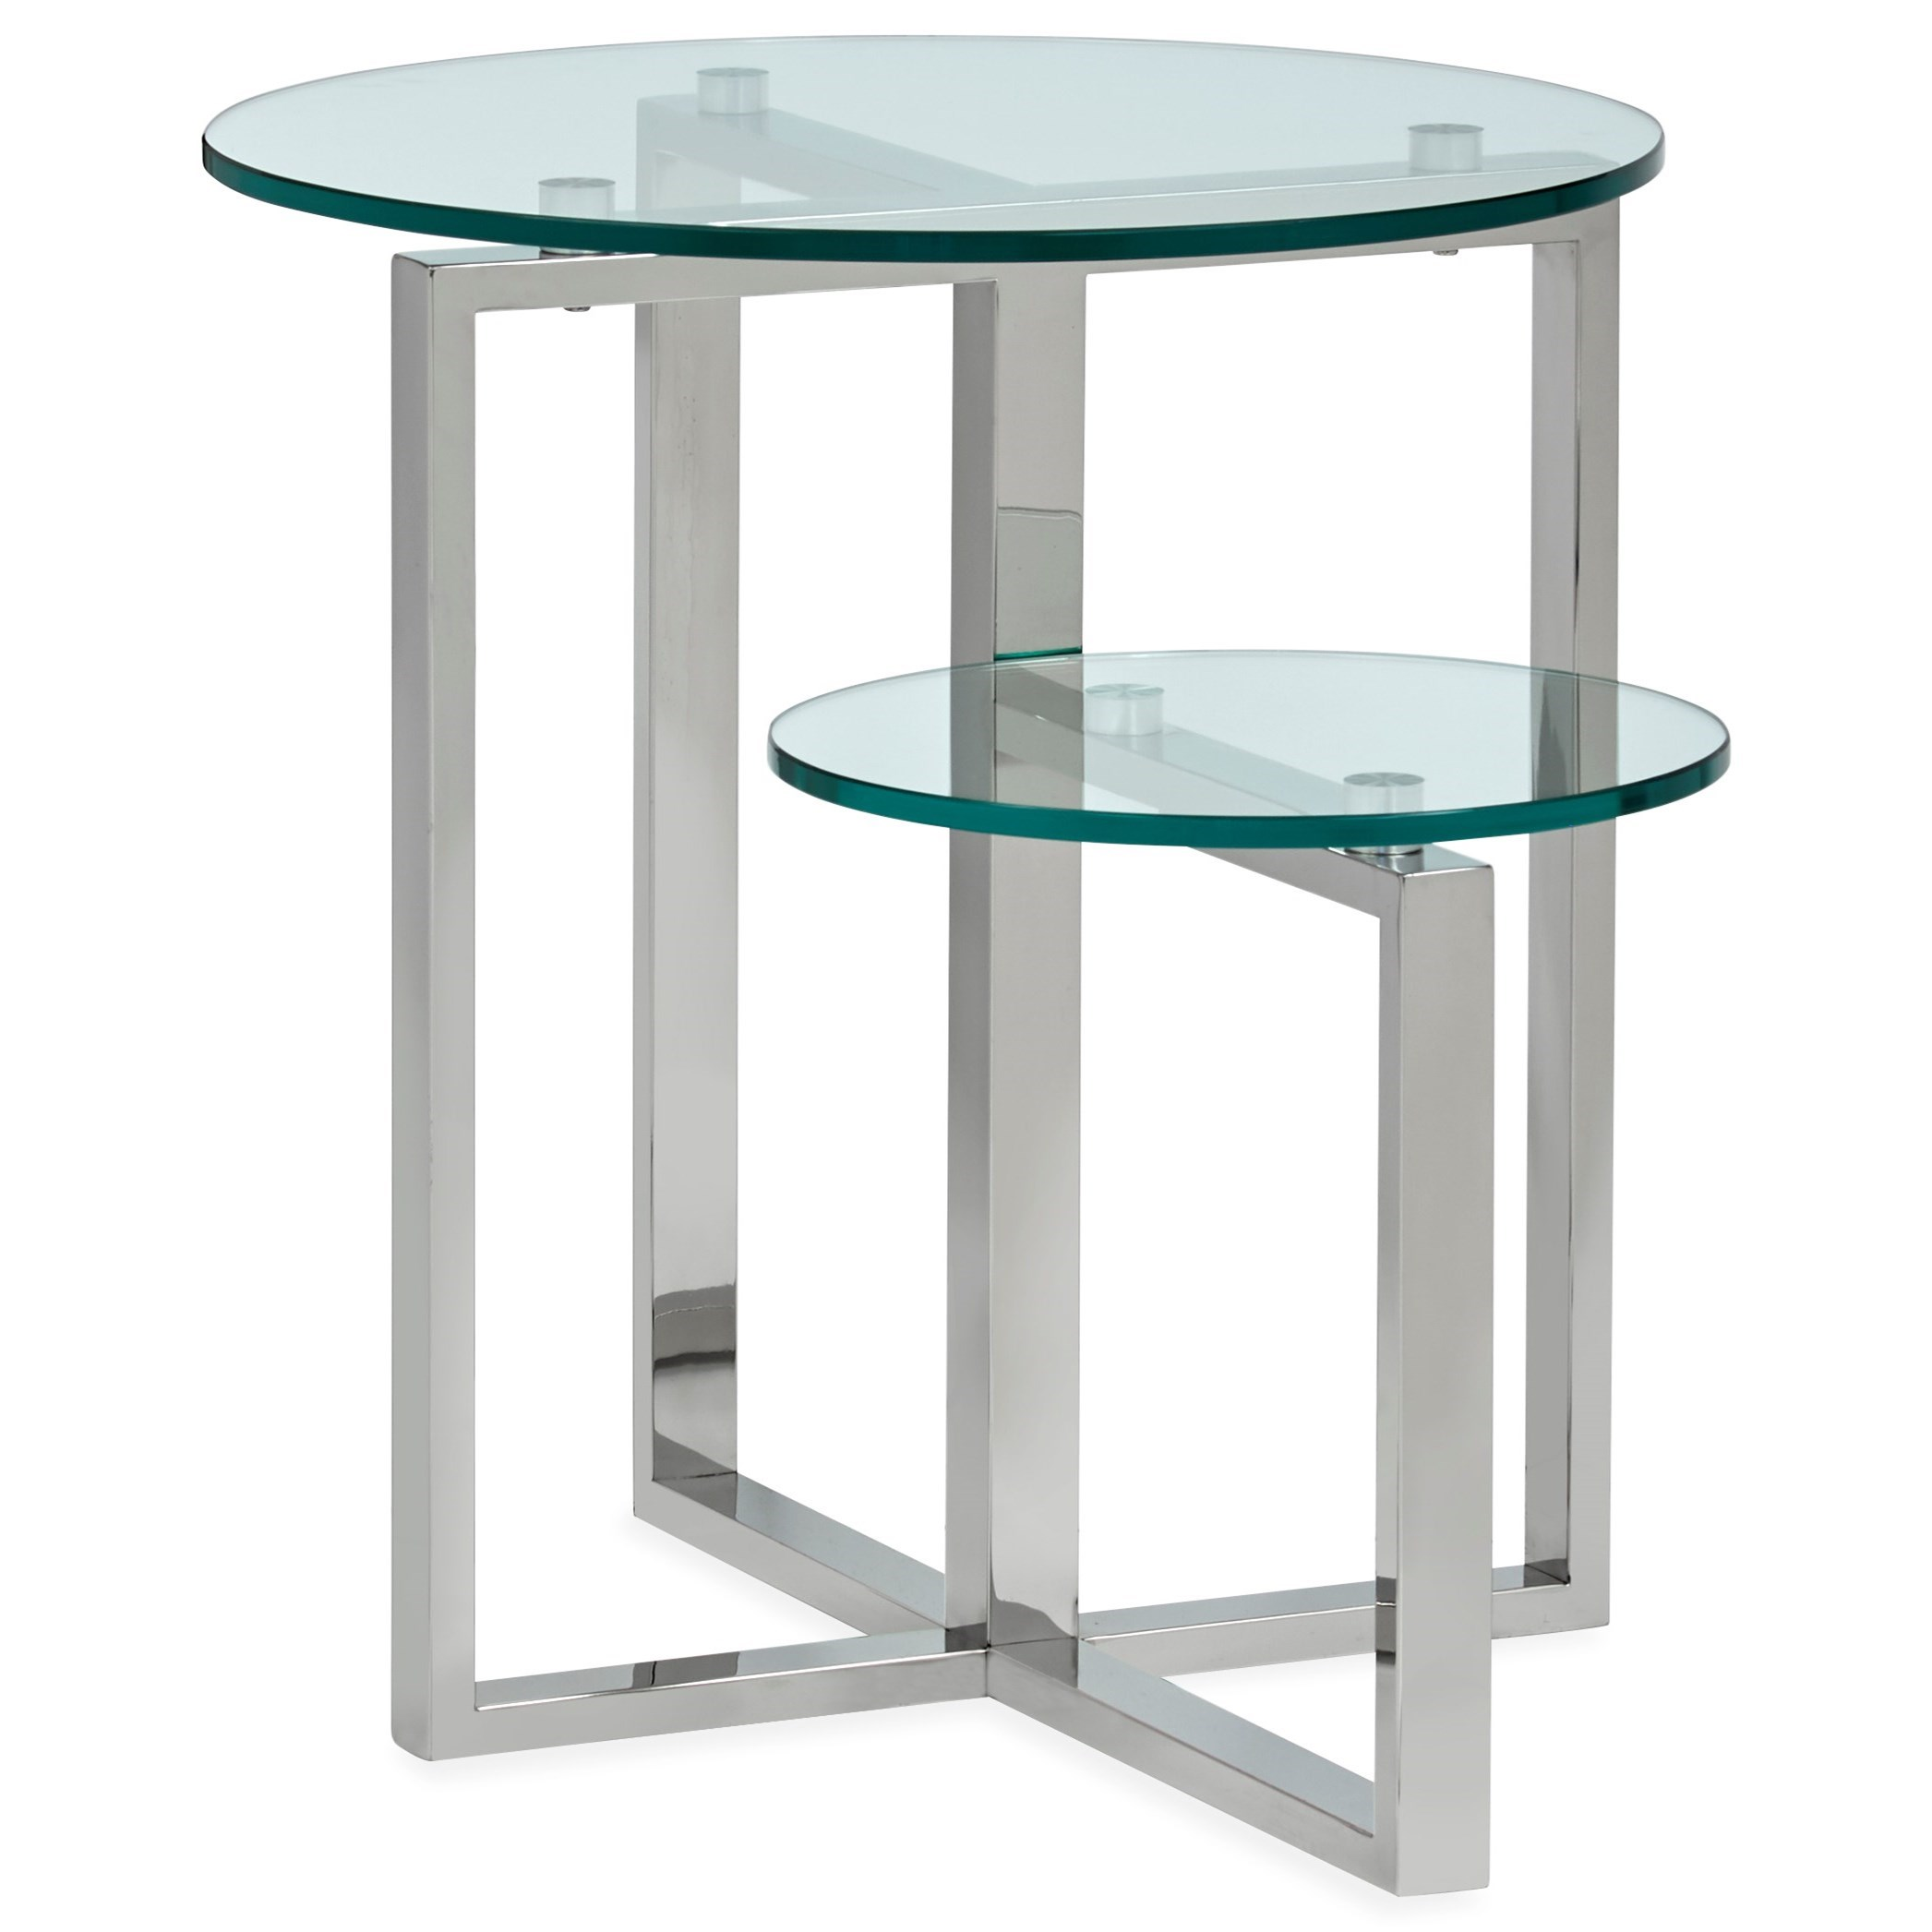 Medlock T5056 Shaped End Table by Magnussen Home at Darvin Furniture